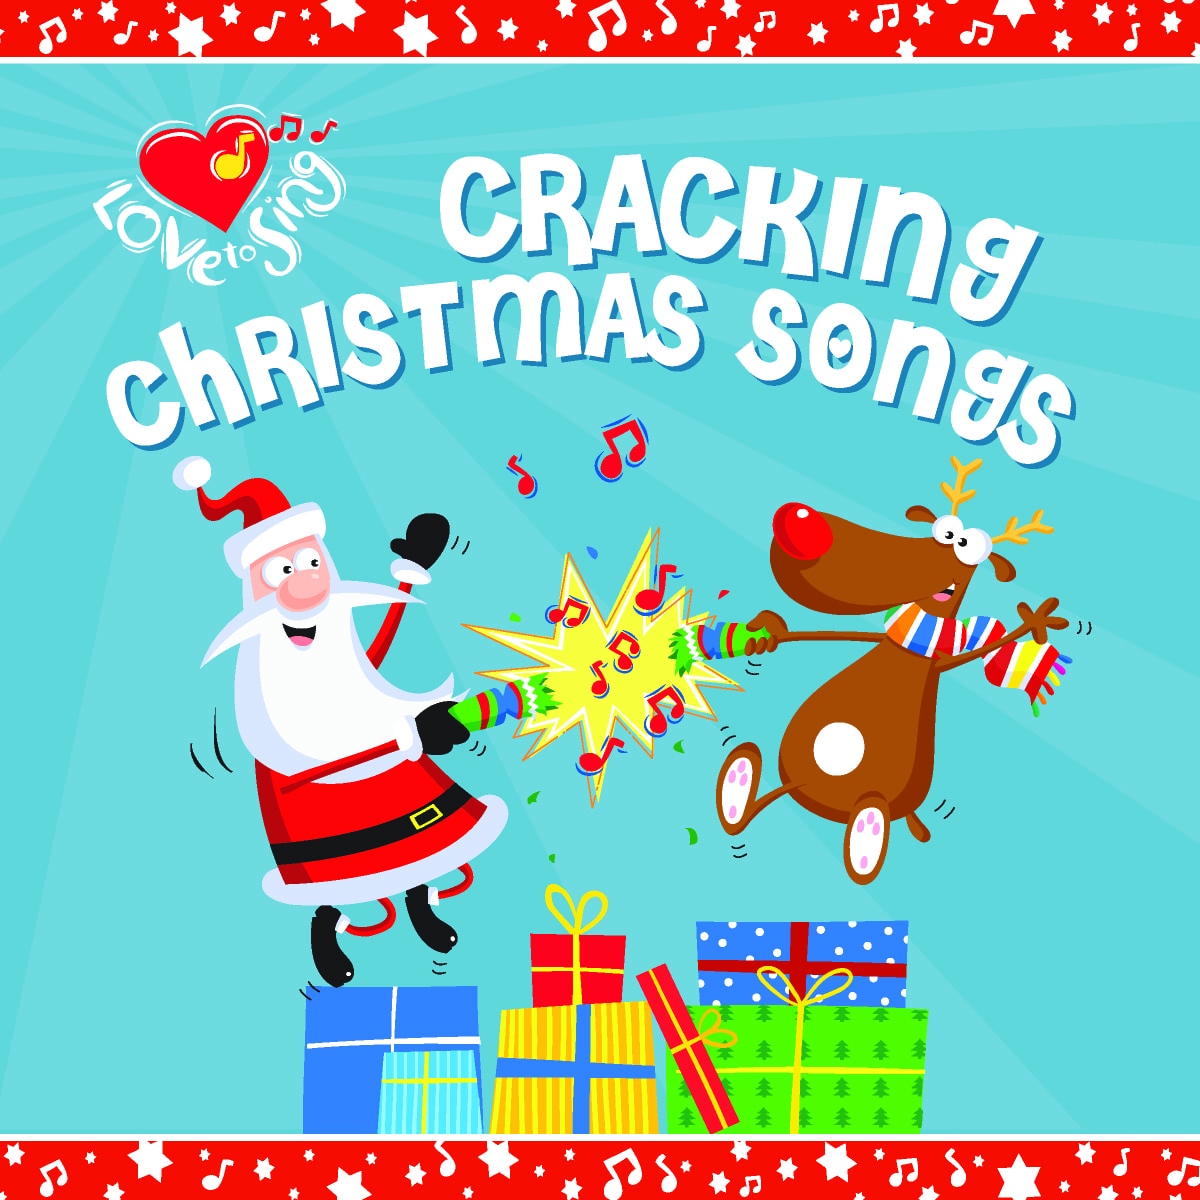 cracking christmas carols download album - Download Christmas Songs